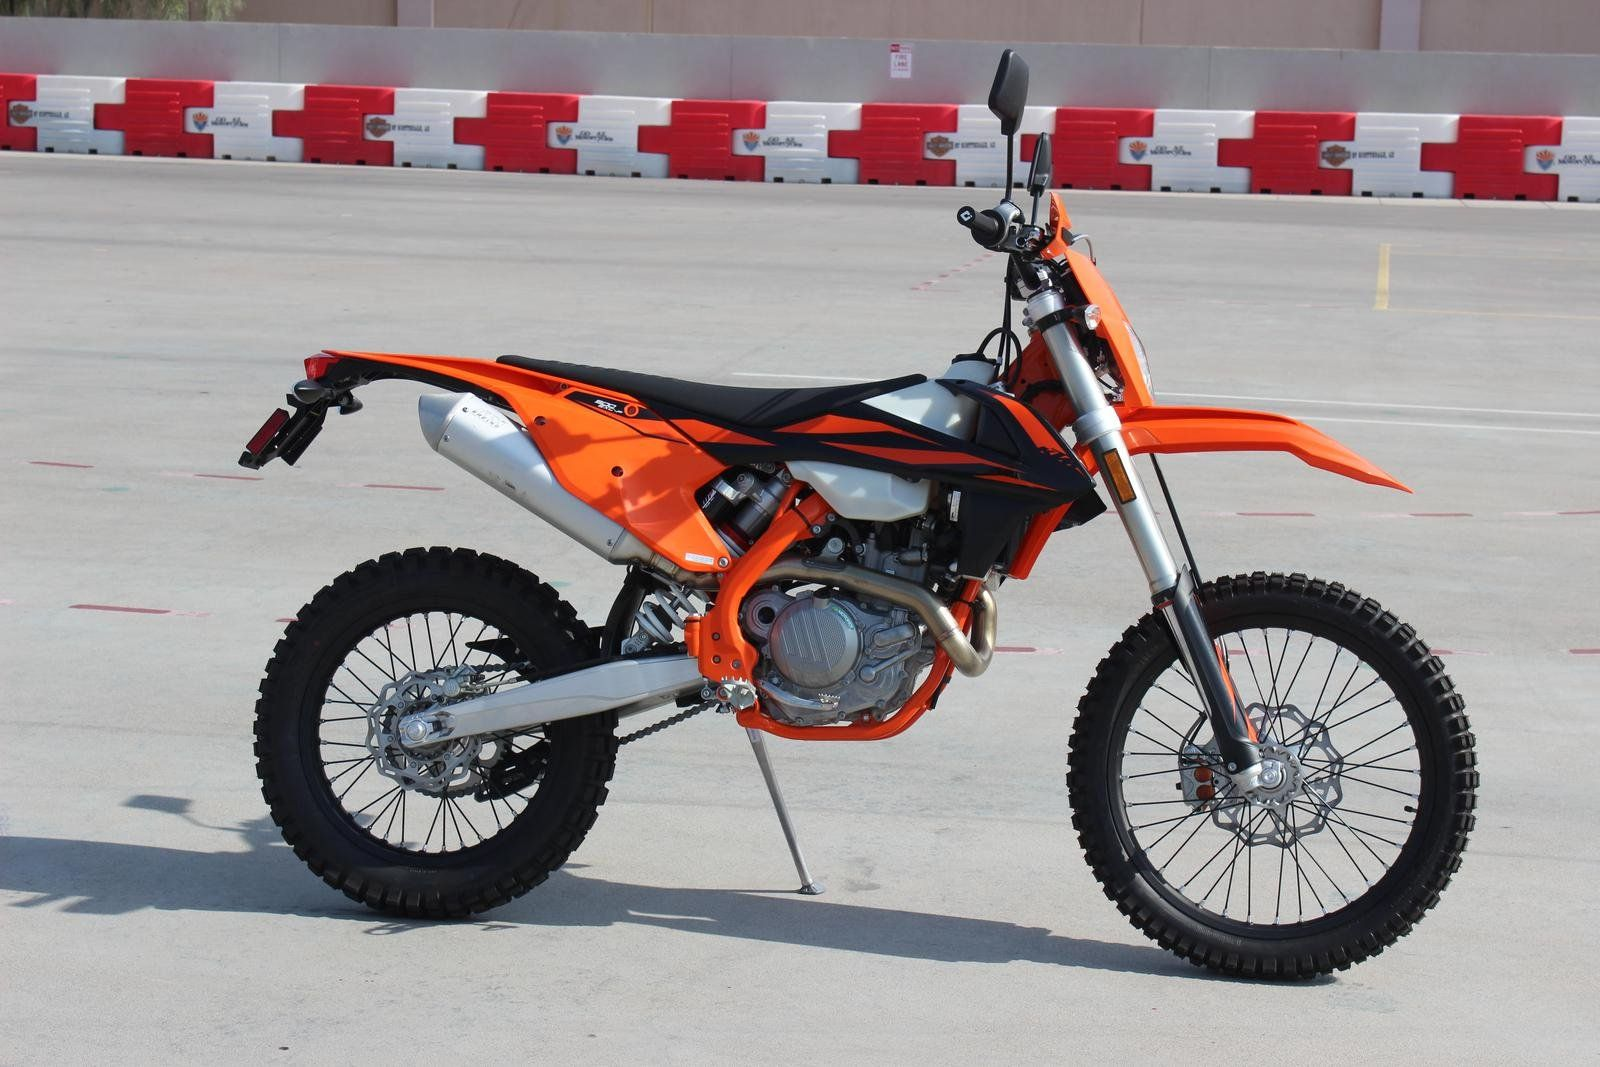 2019 Ktm 500 Exc Wallpaper From 2019 Ktm 500 Exc F For Sale In Scottsdale Az Go Az Motorcycles In With Regard To 2019 Ktm 500 Exc Ktm Motorcycle Wallpaper